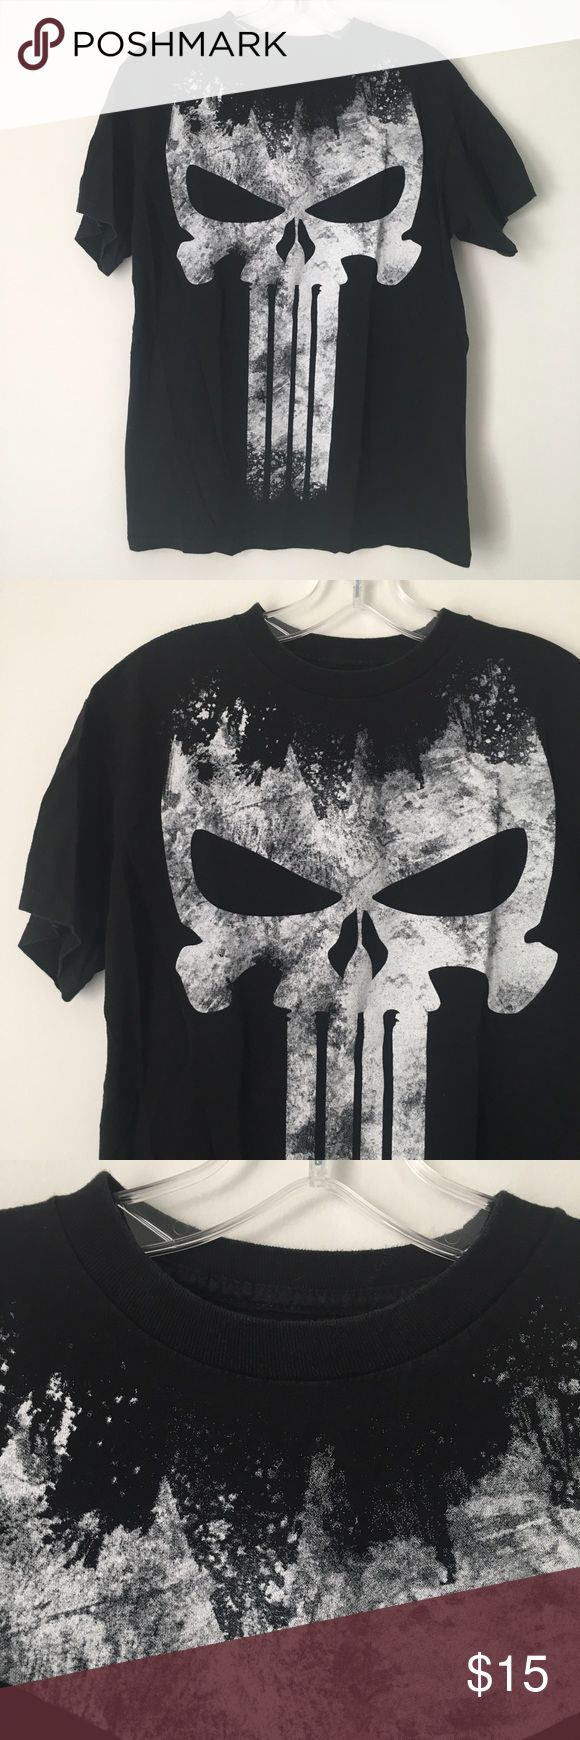 """BLACK GOTH MARVEL PUNISHER SKULL TEE SHIRT TOP !! Black White Graffiti Spray Paint Splatter Goth Gothic Punk Rock Grunge Marvel Punisher Skull Skulls Distressed Faded Tee Shirt Top    Worn and washed a few times, but still in great condition.    NO major or damaging flaws. Minimal fading around the neckline/collar. Clean and excellent otherwise!    Size: Unisex / Adult Medium. (May run a bit smaller.)    Chest (pit to pit) - 18"""" across • Length (shoulder to bottom hem) - 26"""" long    NO…"""